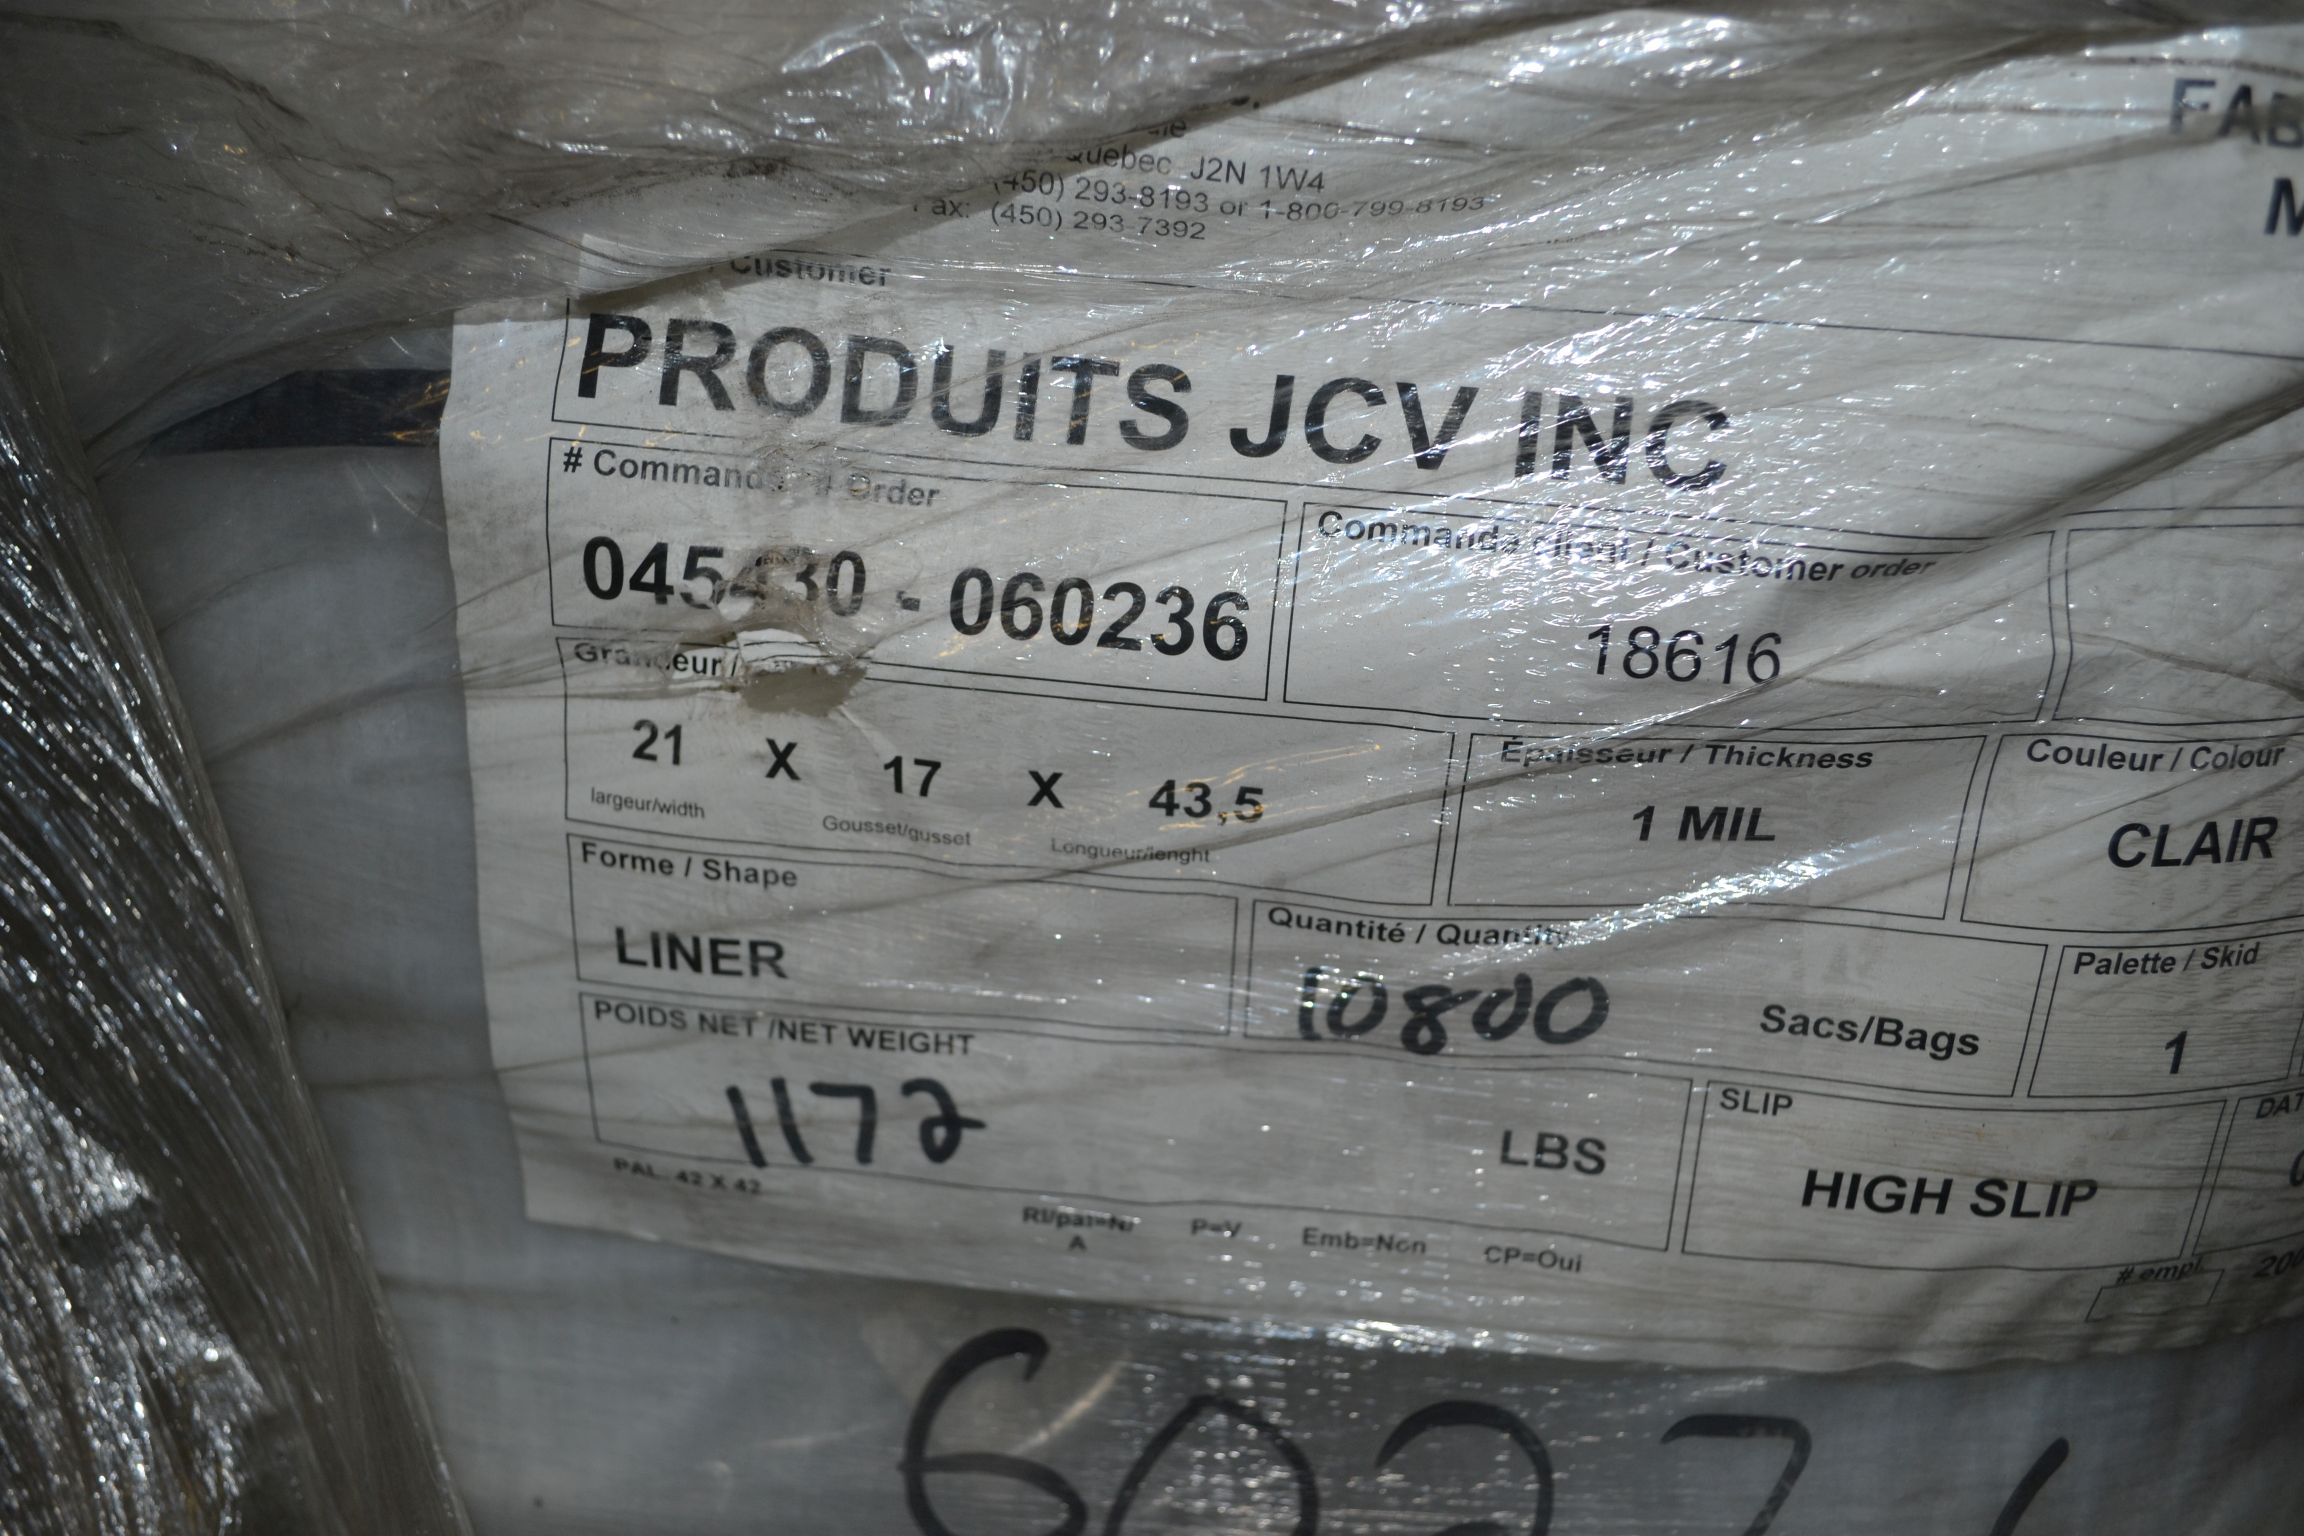 Lot 6 - Lot of Liner Bags, Clear Plastic